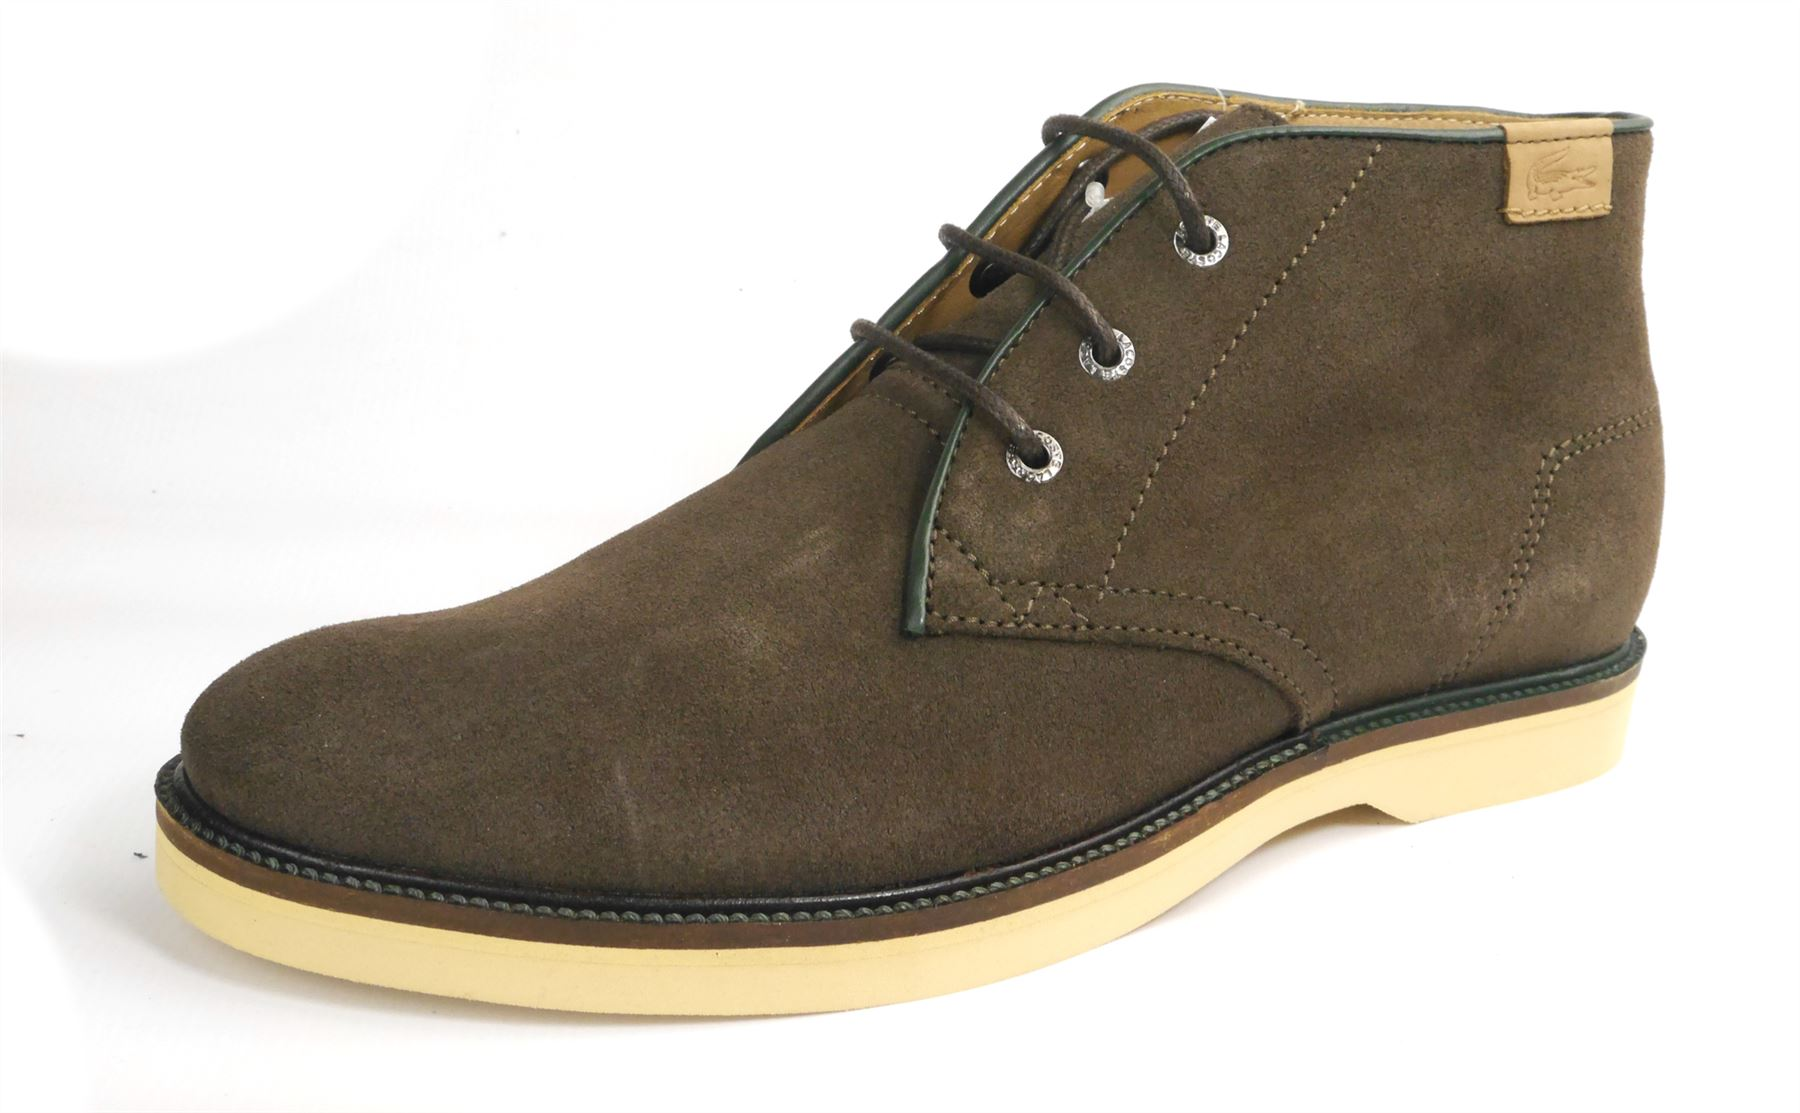 Leather Suede Desert Boots Brown